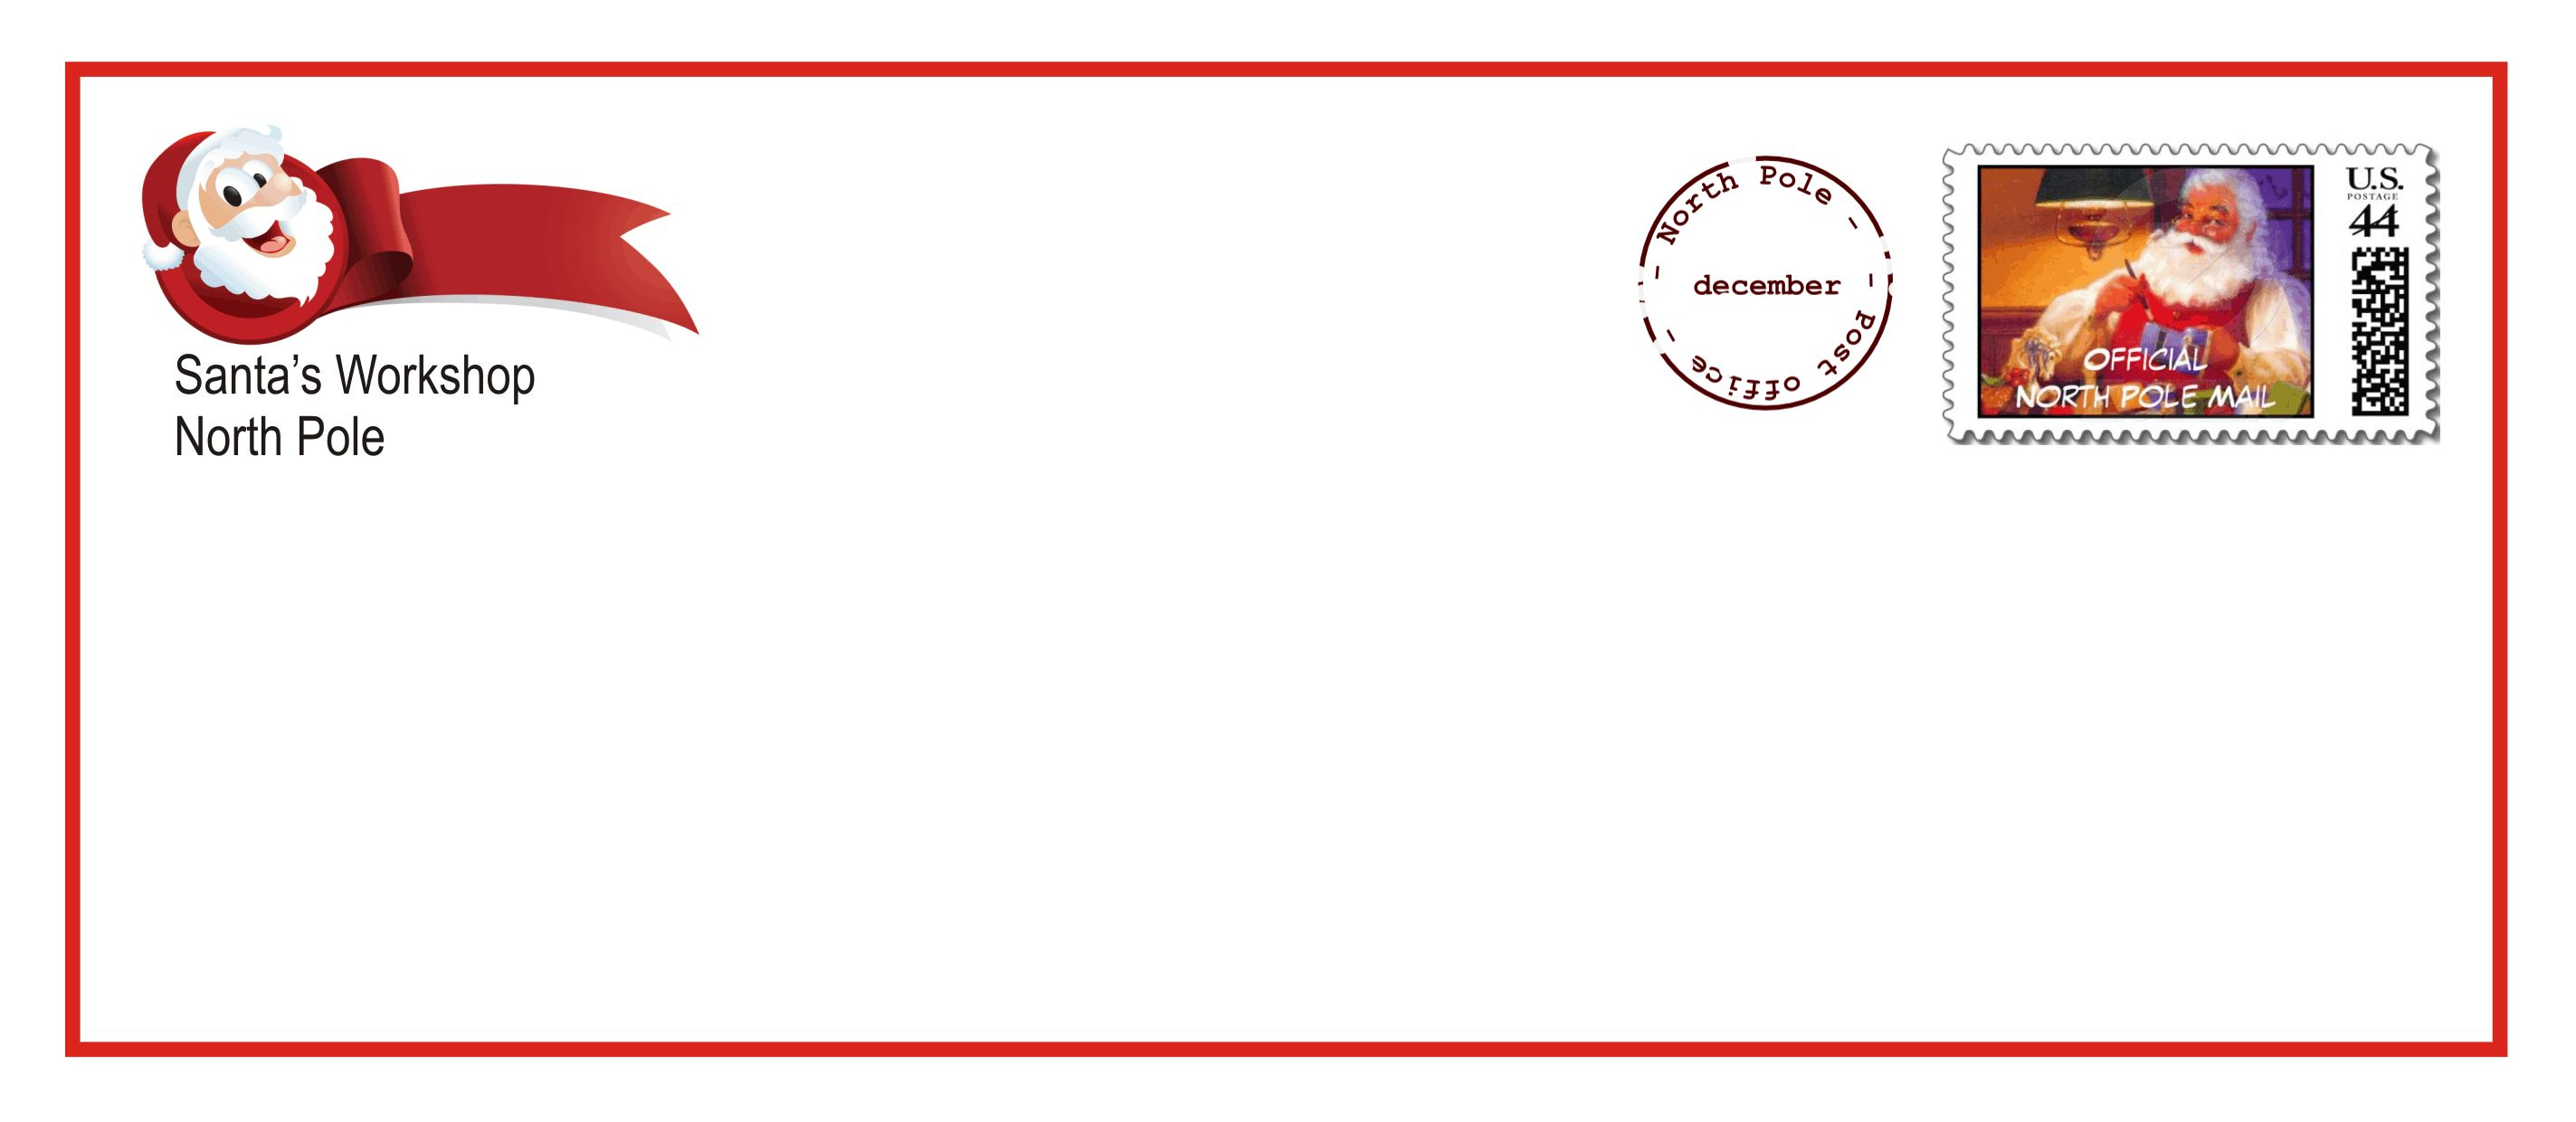 Blank Santa Letter Template - Printable Santa Letter Envelopes that E with the Upgraded Letter